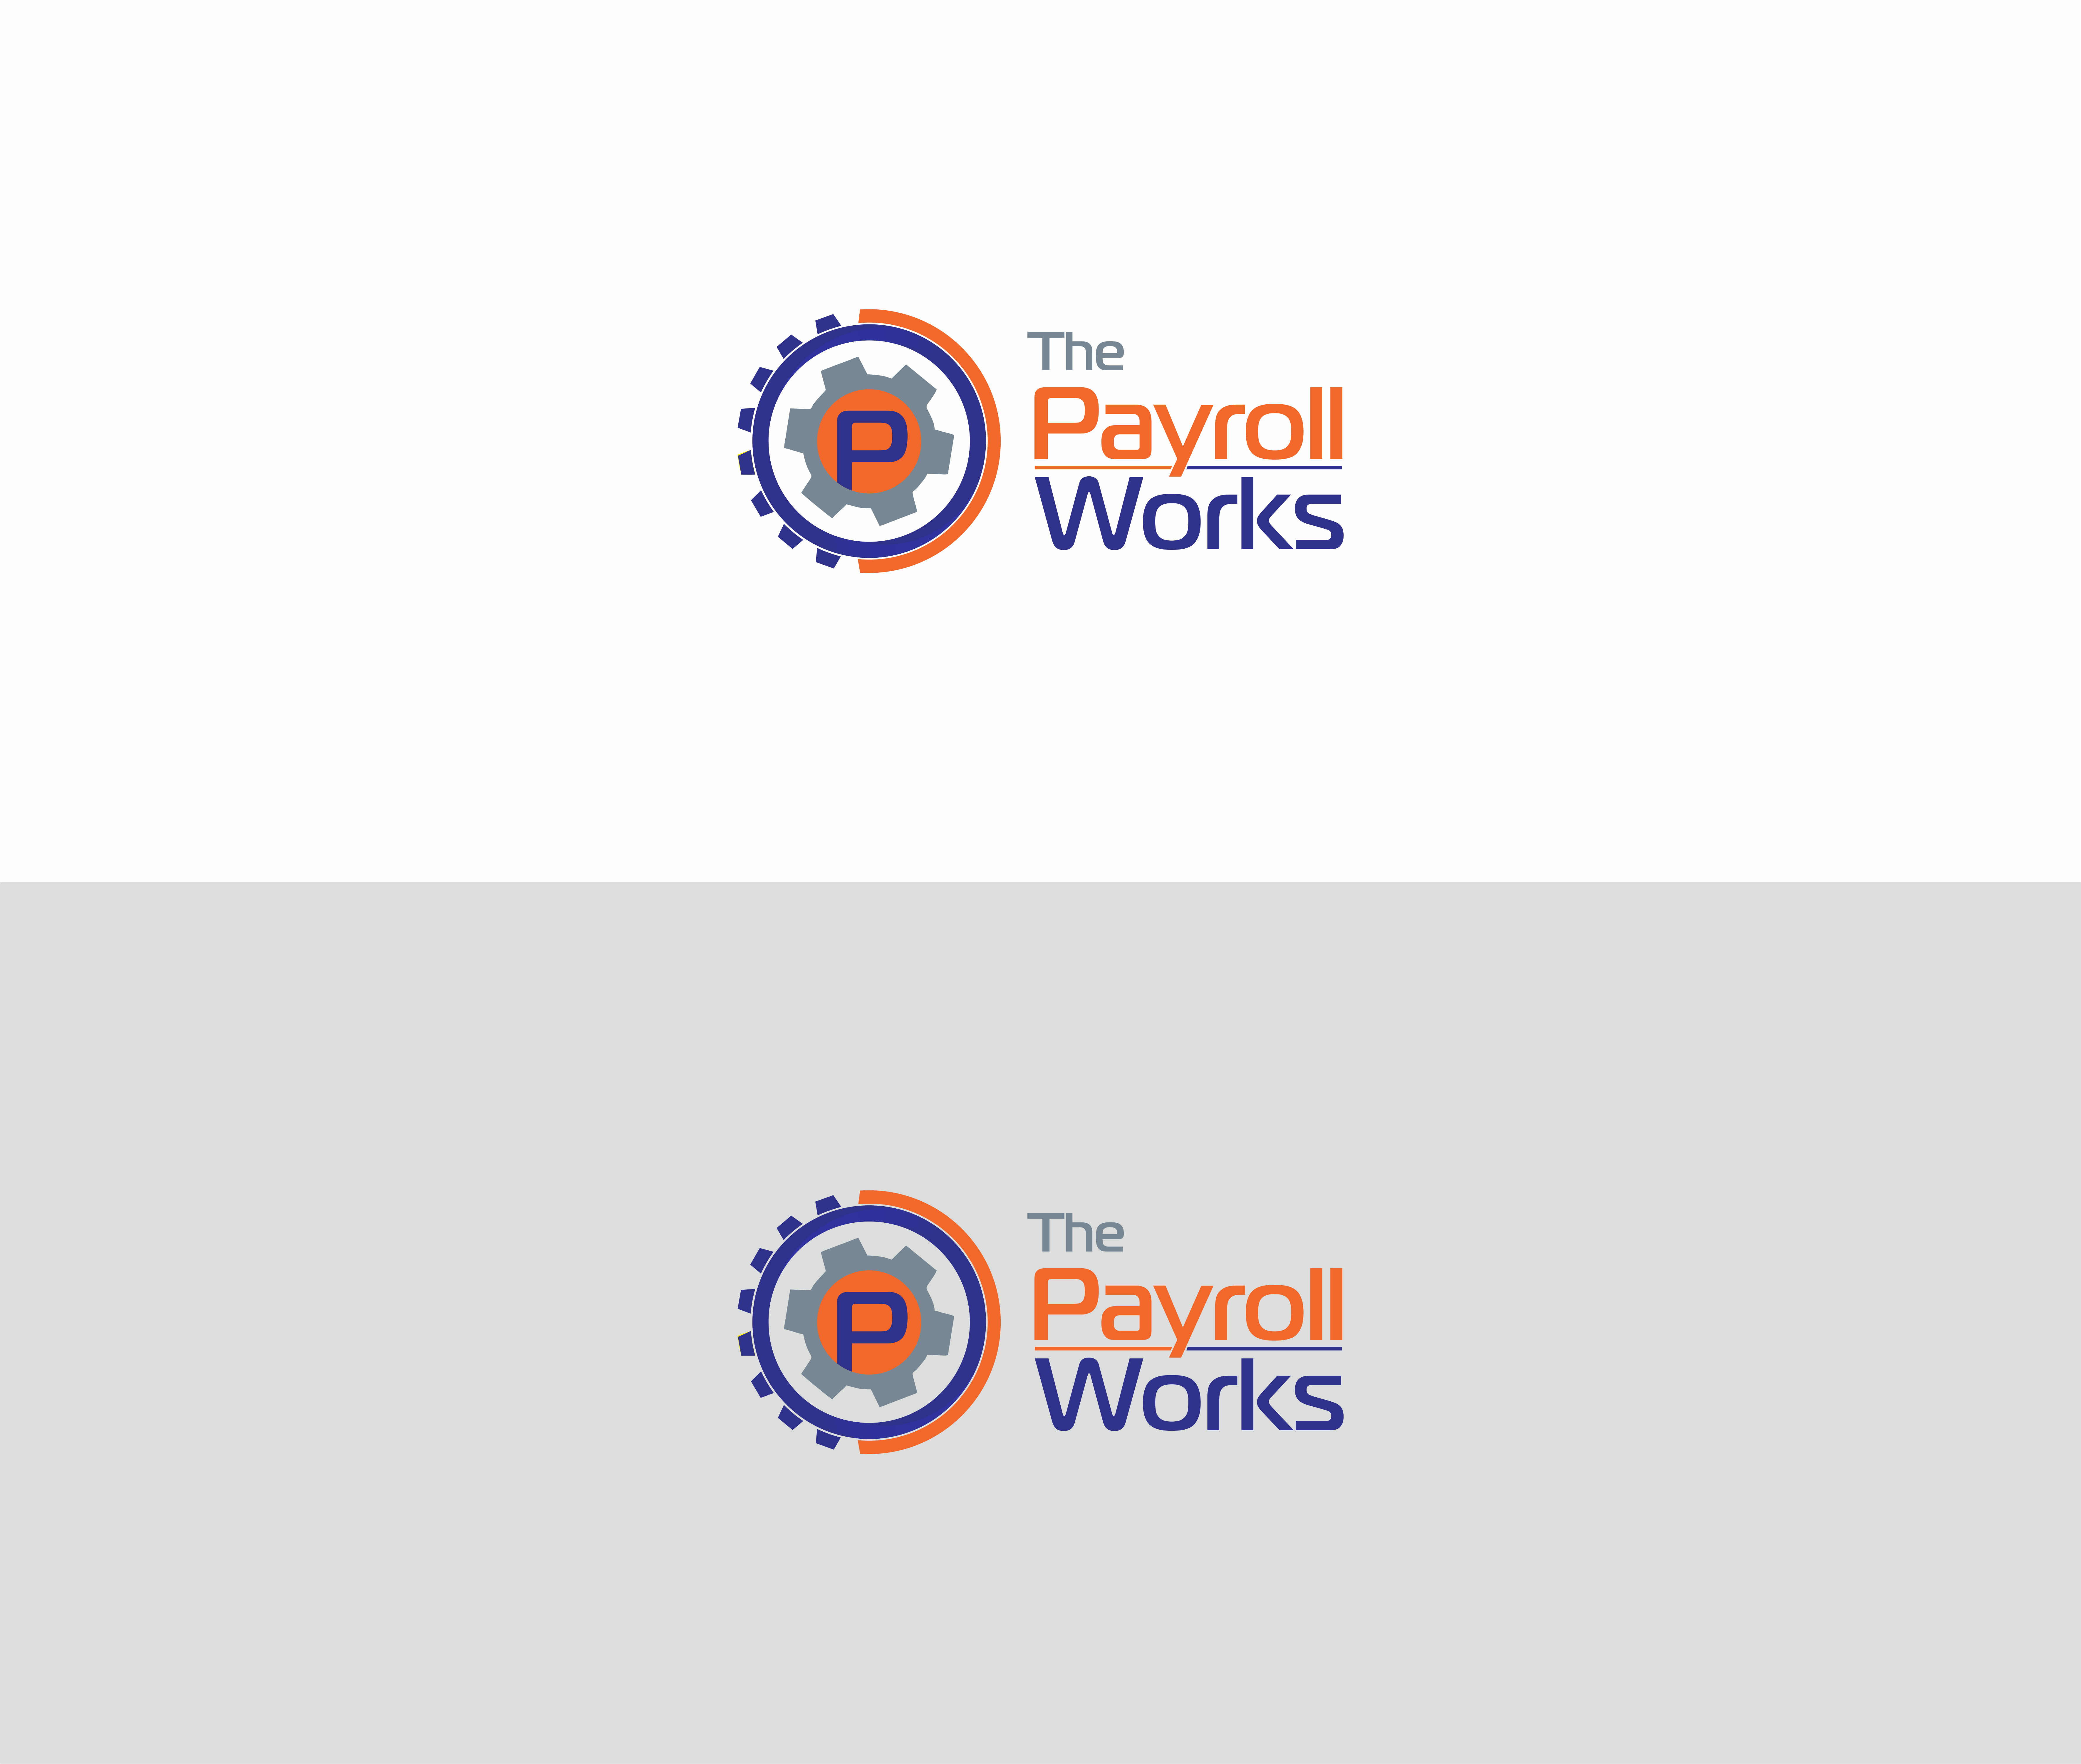 Logo Design by NOOR SYAIFUDDIN - Entry No. 35 in the Logo Design Contest Captivating Logo Design for The Payroll Works.